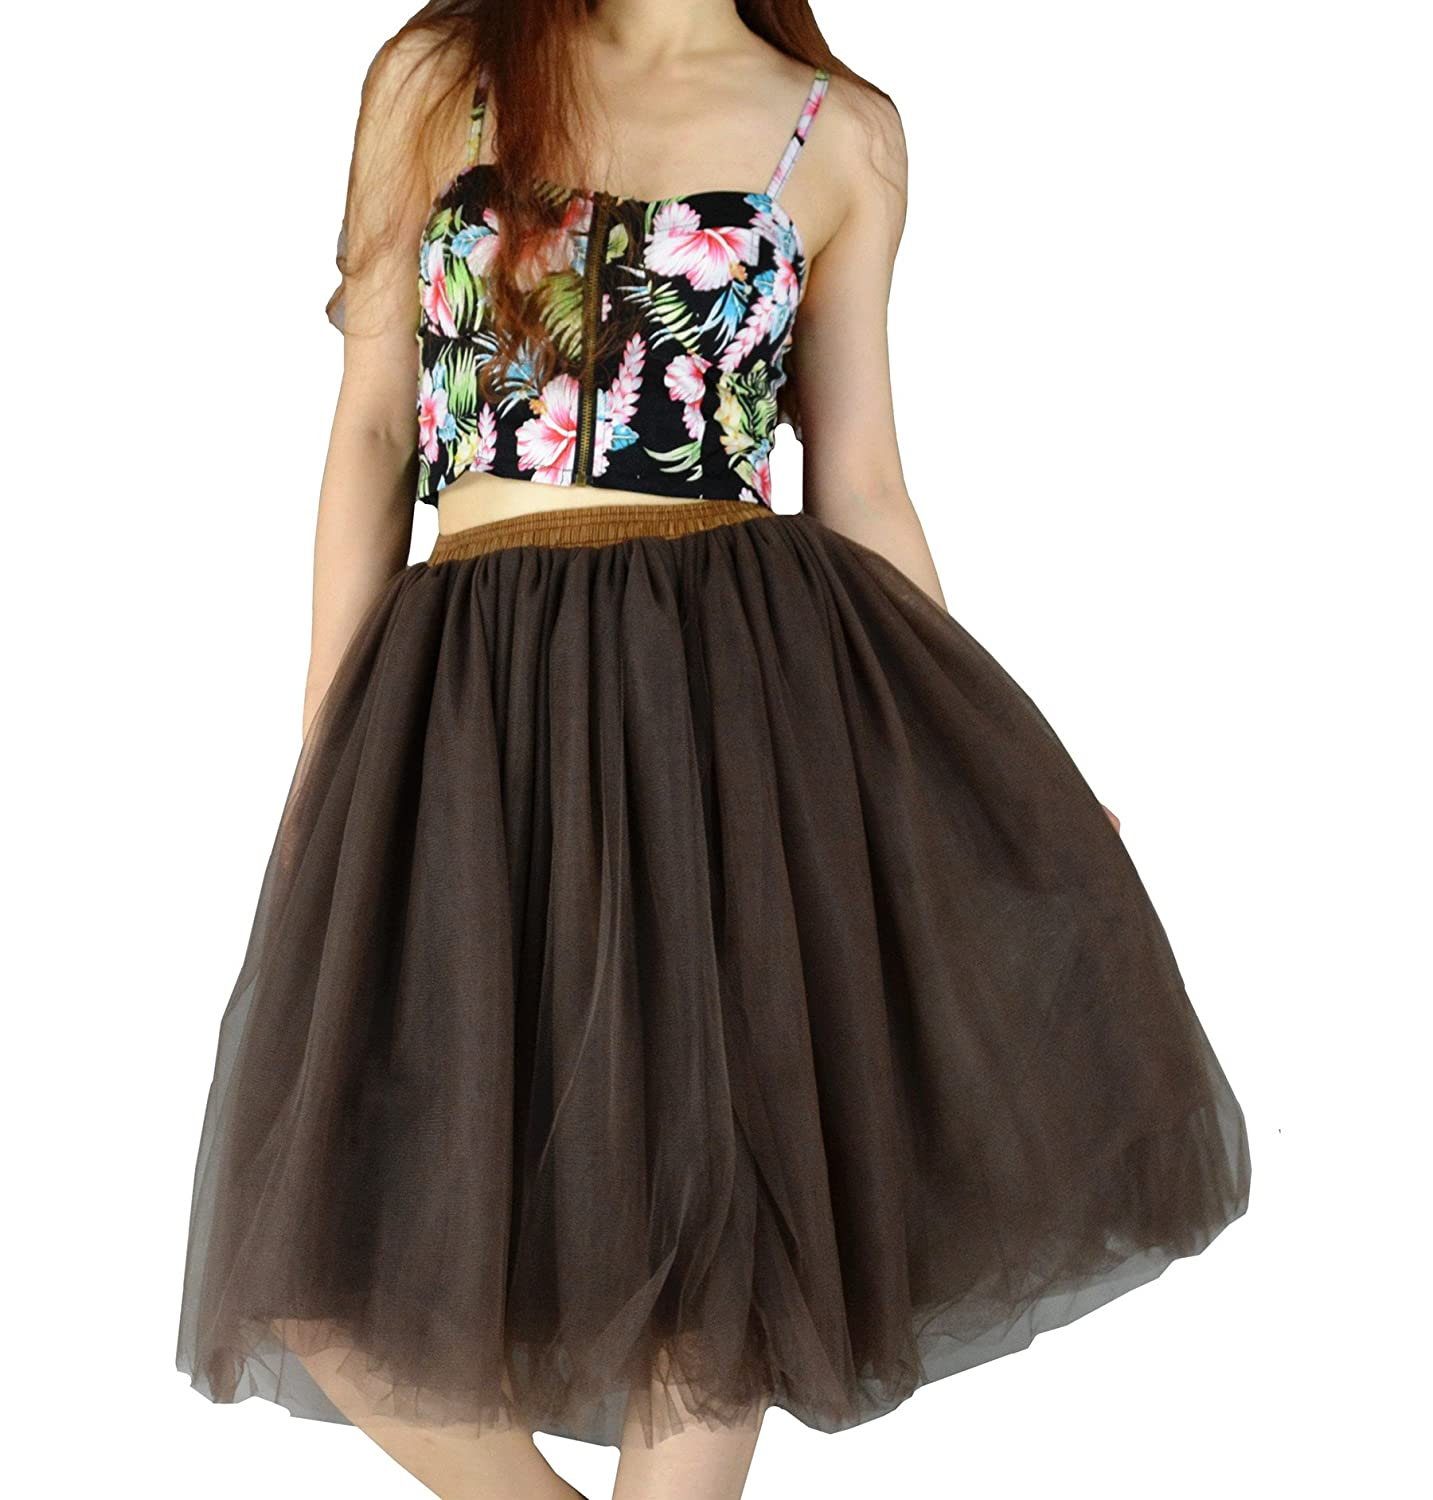 YSJ Women's Layered Tutu Tulle Knee Length A Line Prom Party Skirts J01